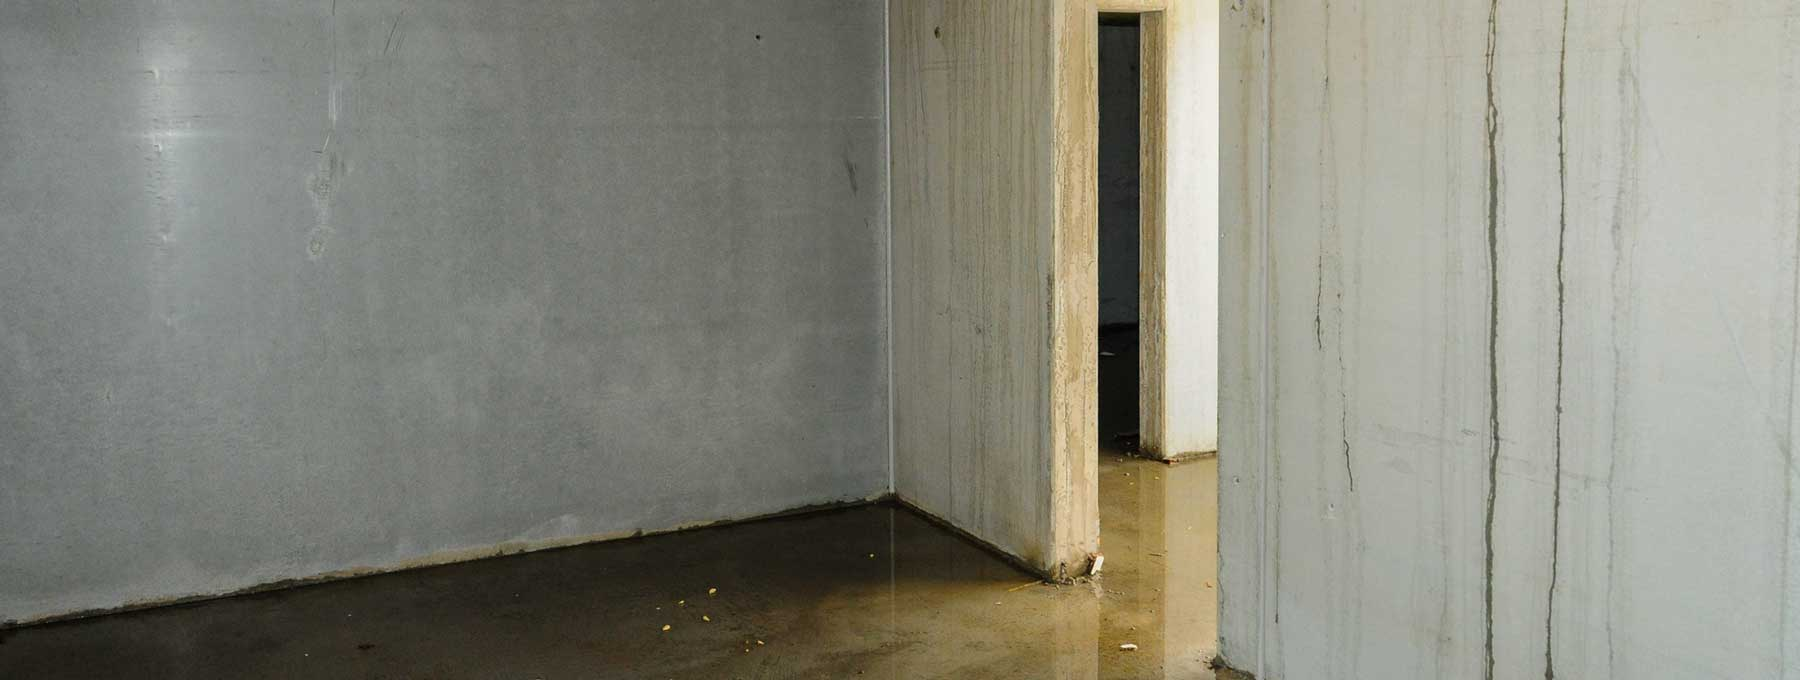 basement flood damage raleigh nc